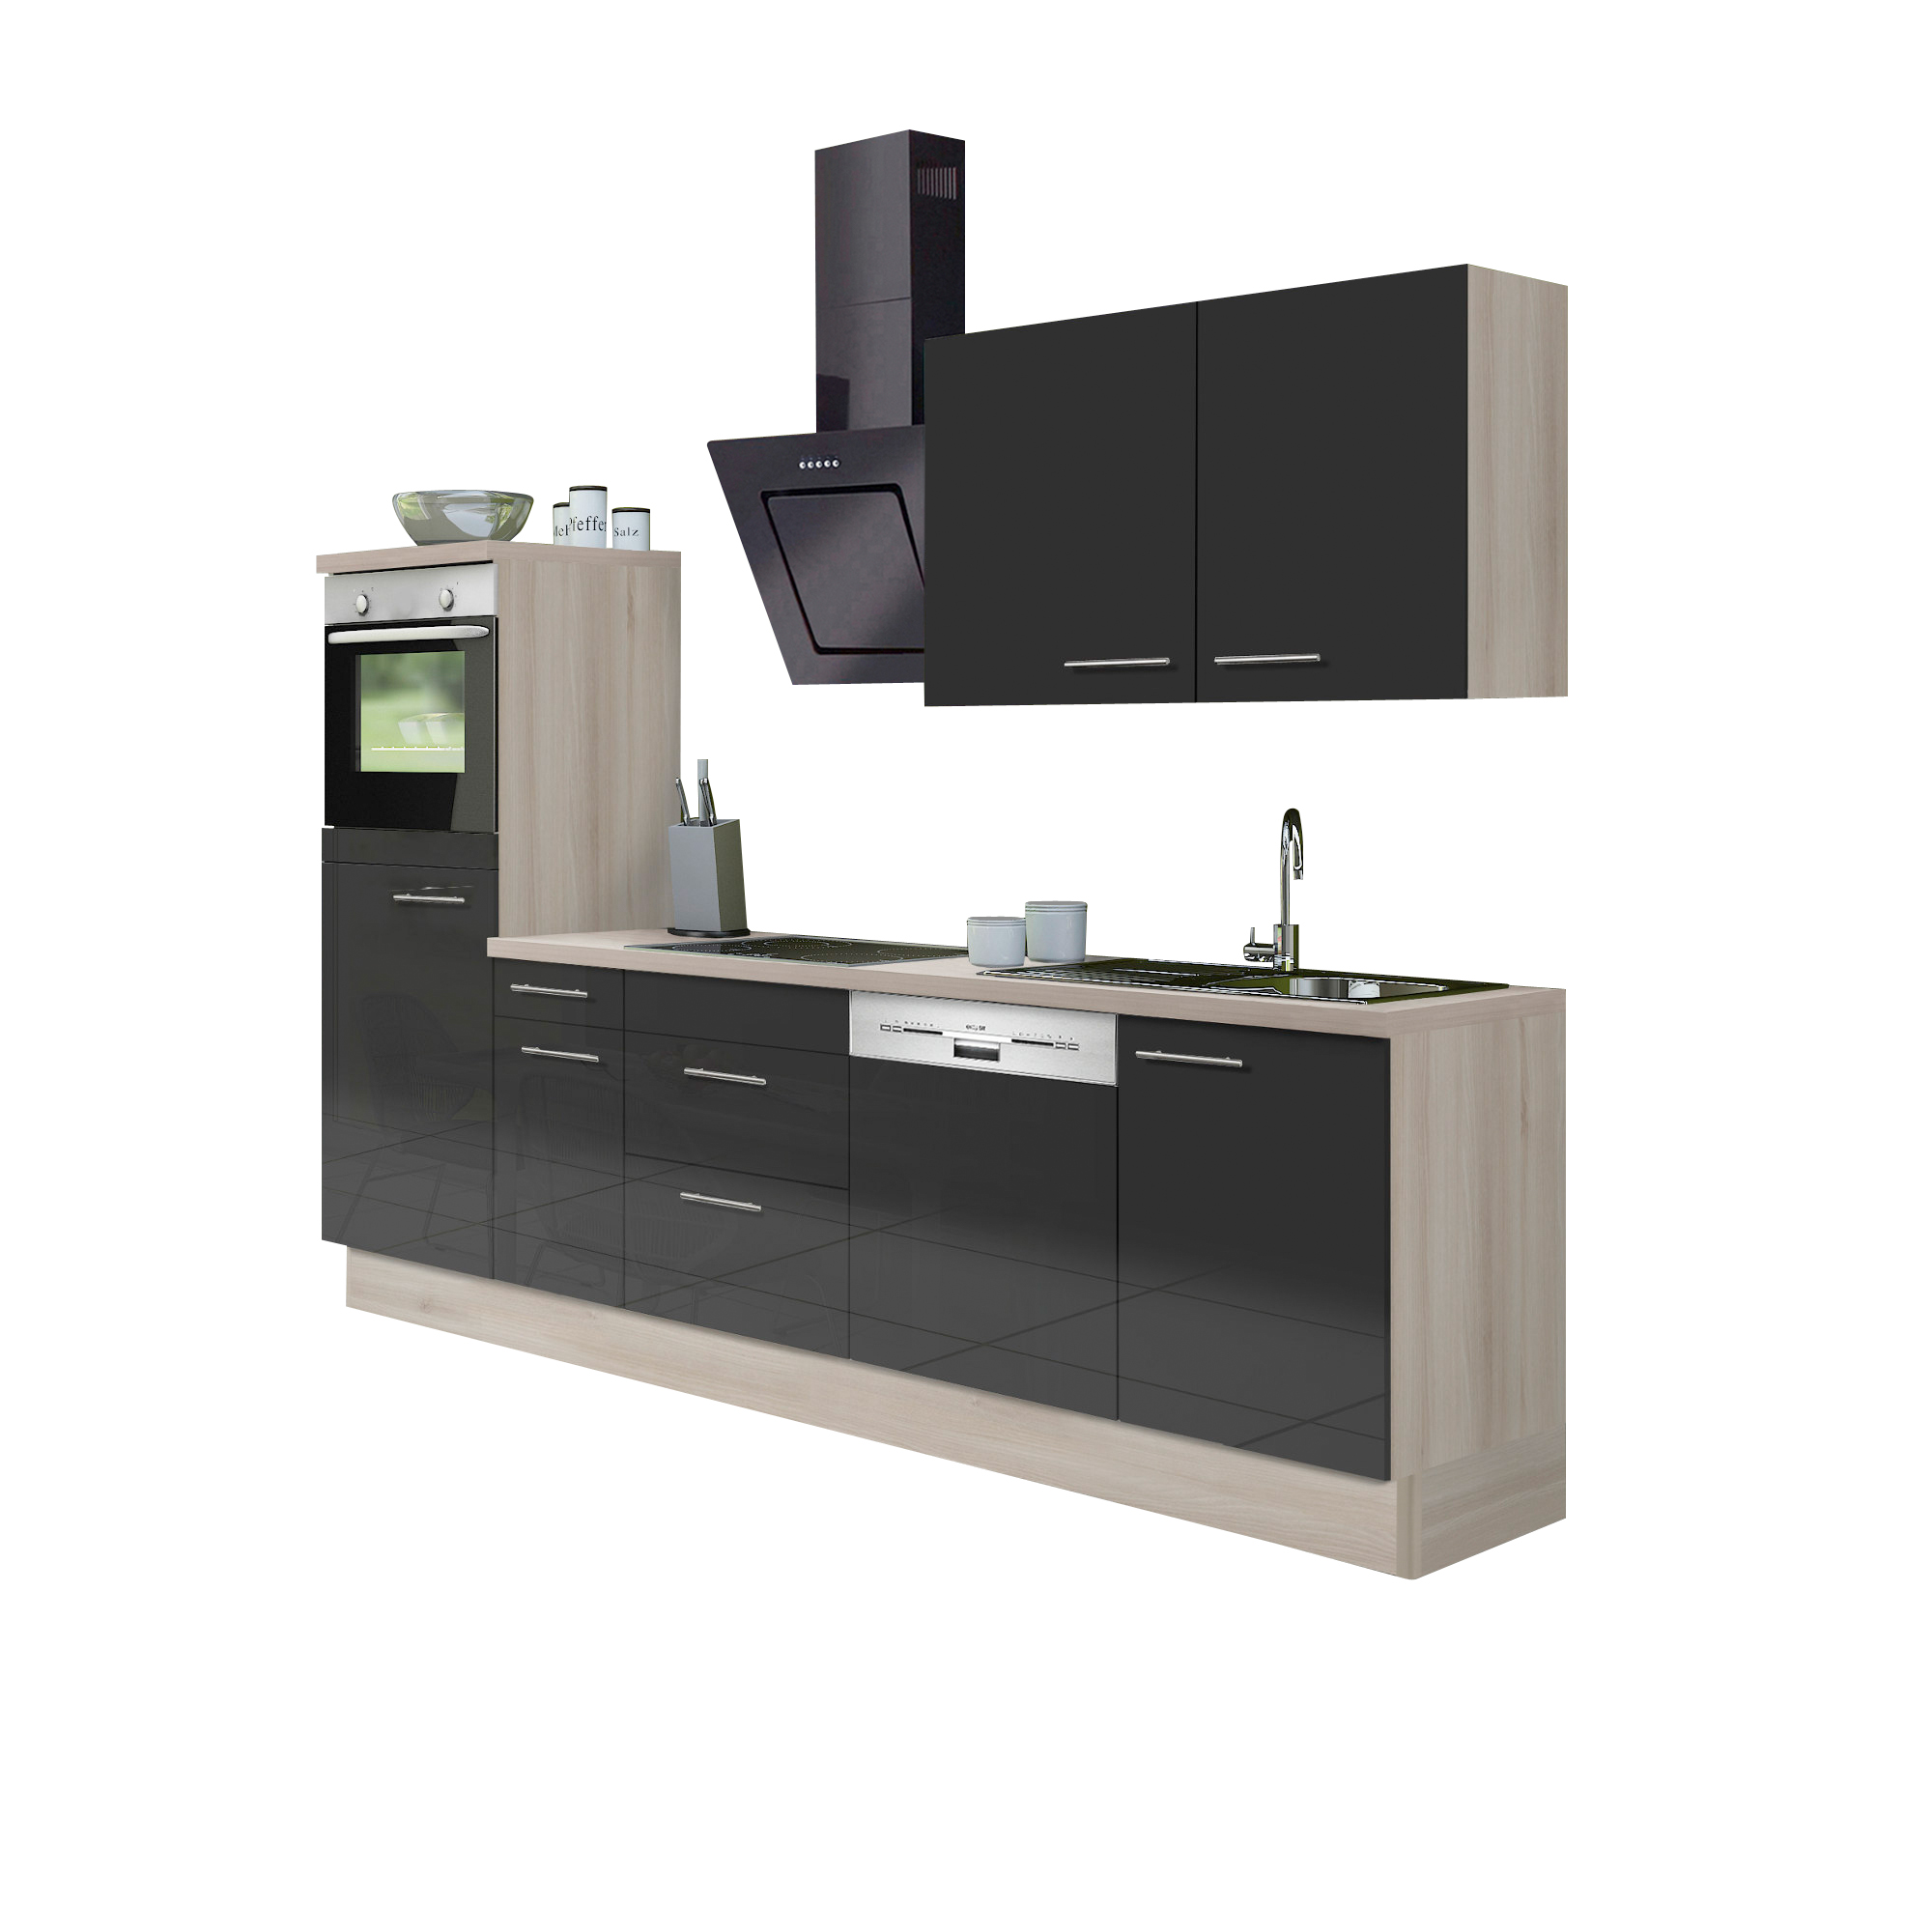 k chenzeile leon vario 3 1 k che mit e ger ten breite 270 cm braun k che k chenzeilen. Black Bedroom Furniture Sets. Home Design Ideas